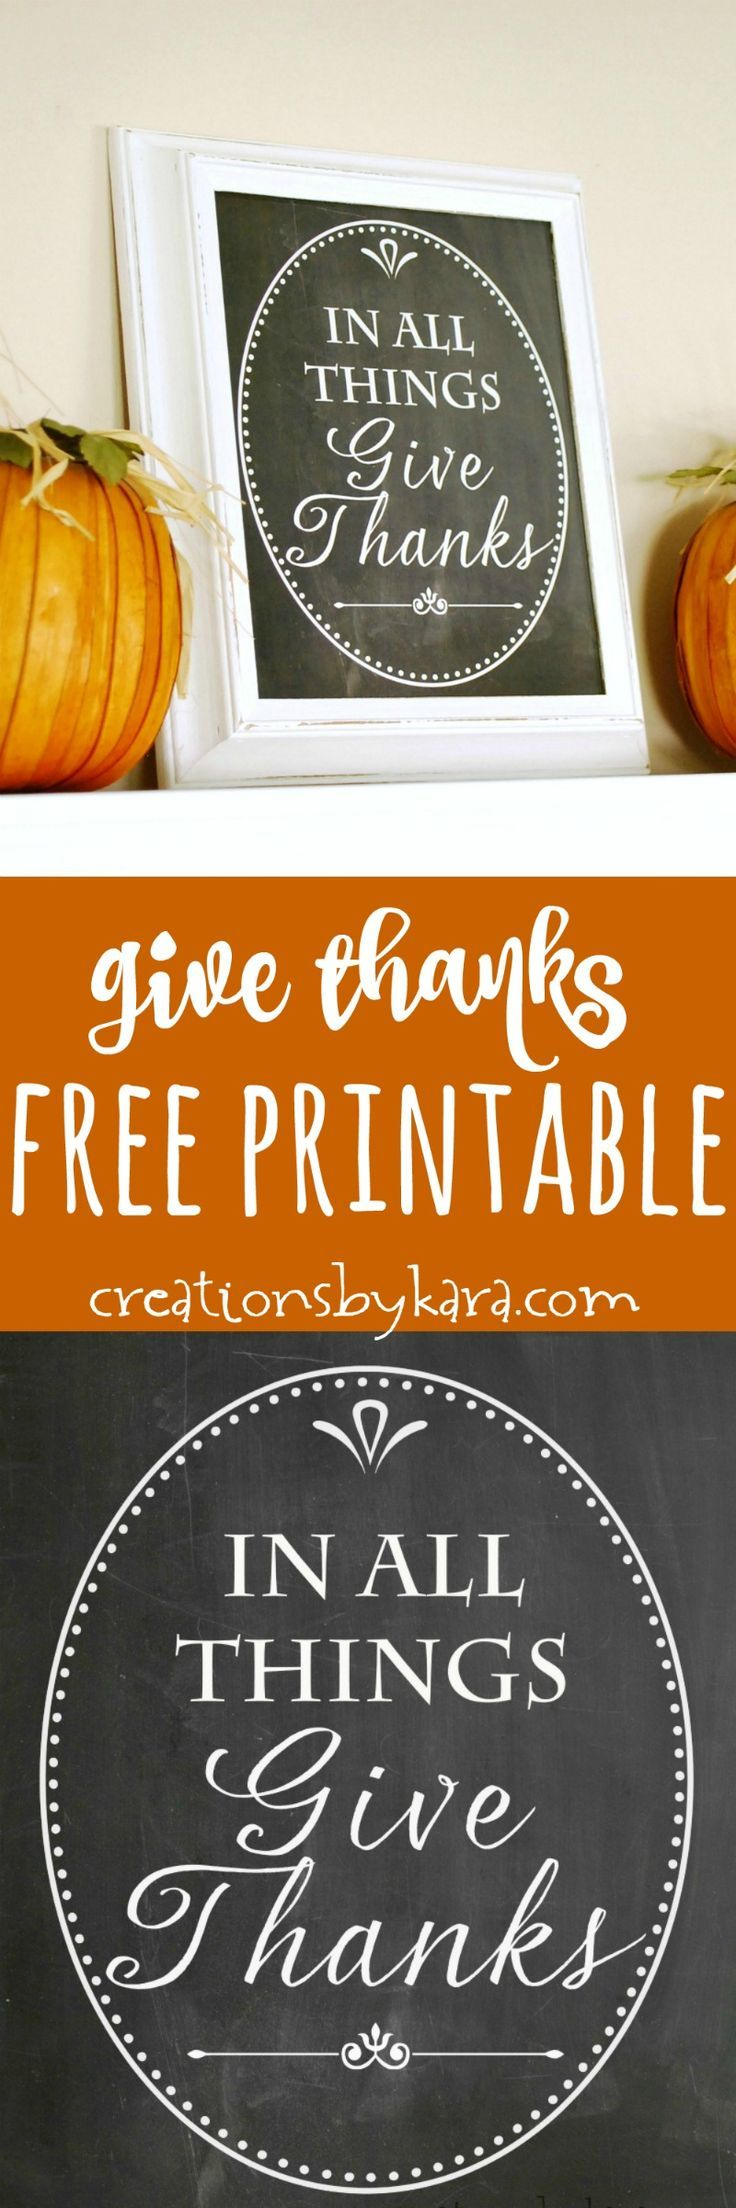 Give Thanks Chalkboard printable - add some fall farmhouse decor to your living space. This free printable makes it easy! via creationsbykara.com